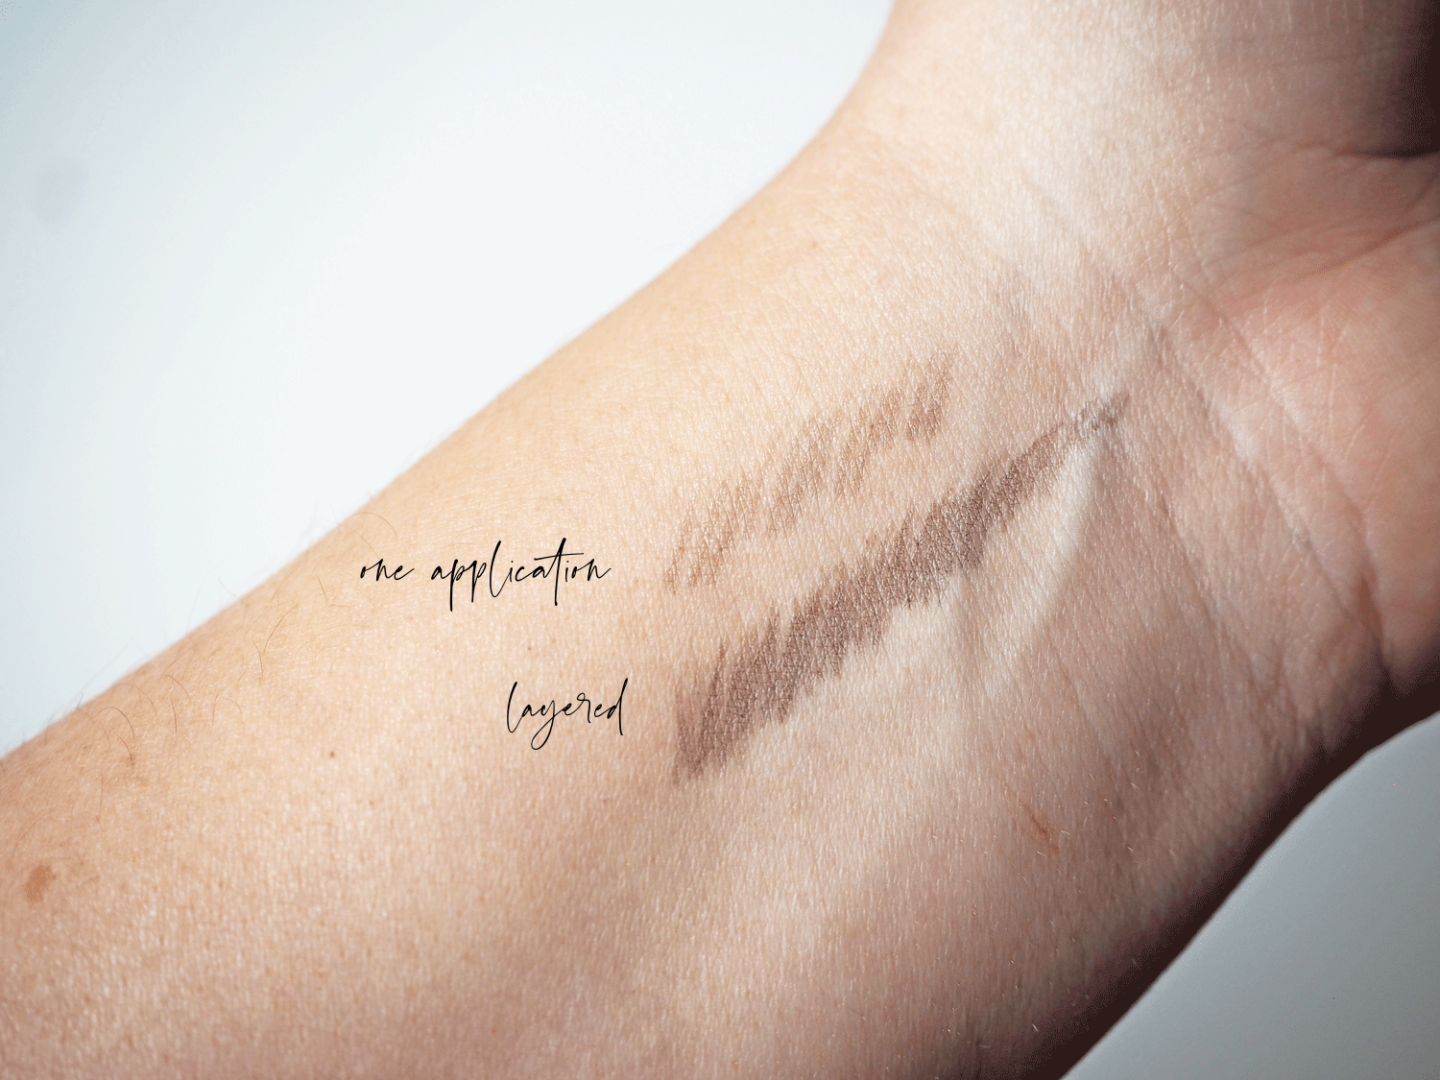 benefit brow microfilling pen review and swatches